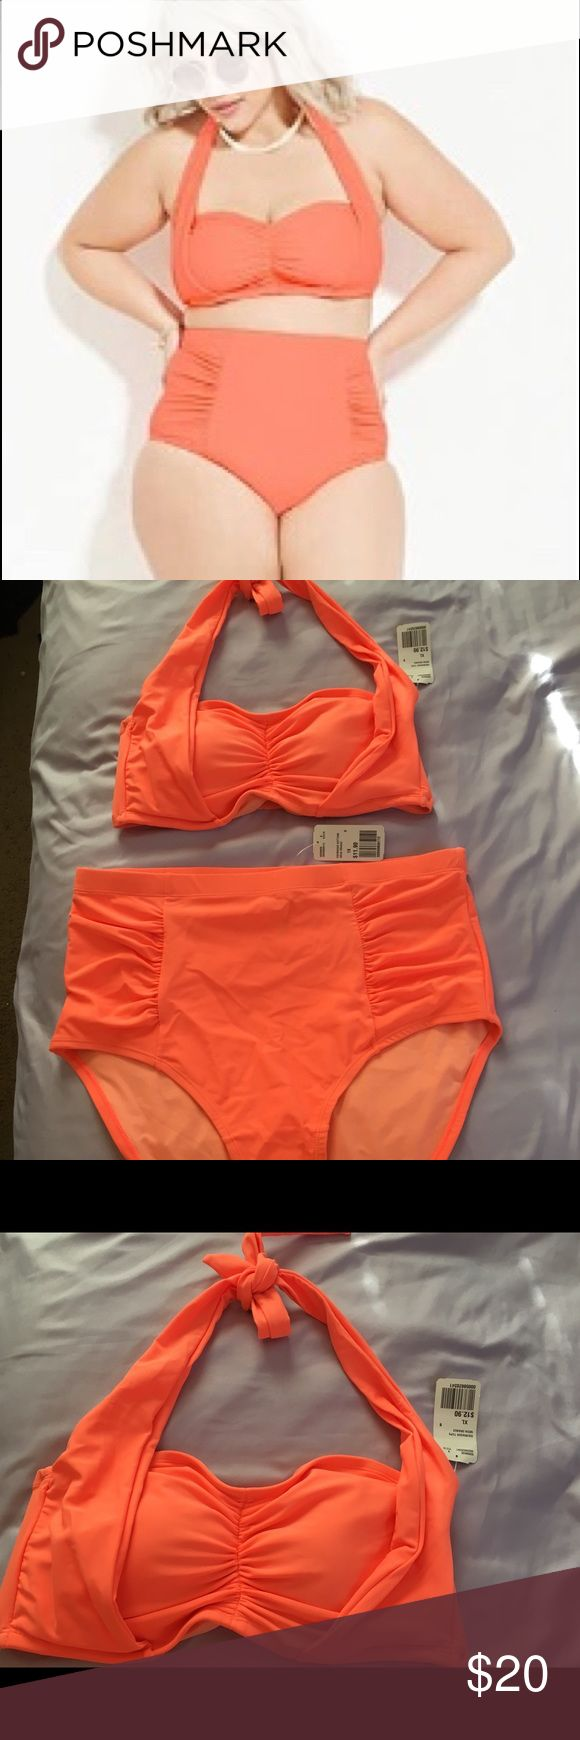 Forever 21 plus size bandeau high waist bikini Forever 21 plus size neon orange bandeau halter bikini top in XL and high waisted bottoms curvy in 1X  •ask questions in the comments  •ALL OFFERS WELCOME 💕 Forever 21 Swim Bikinis